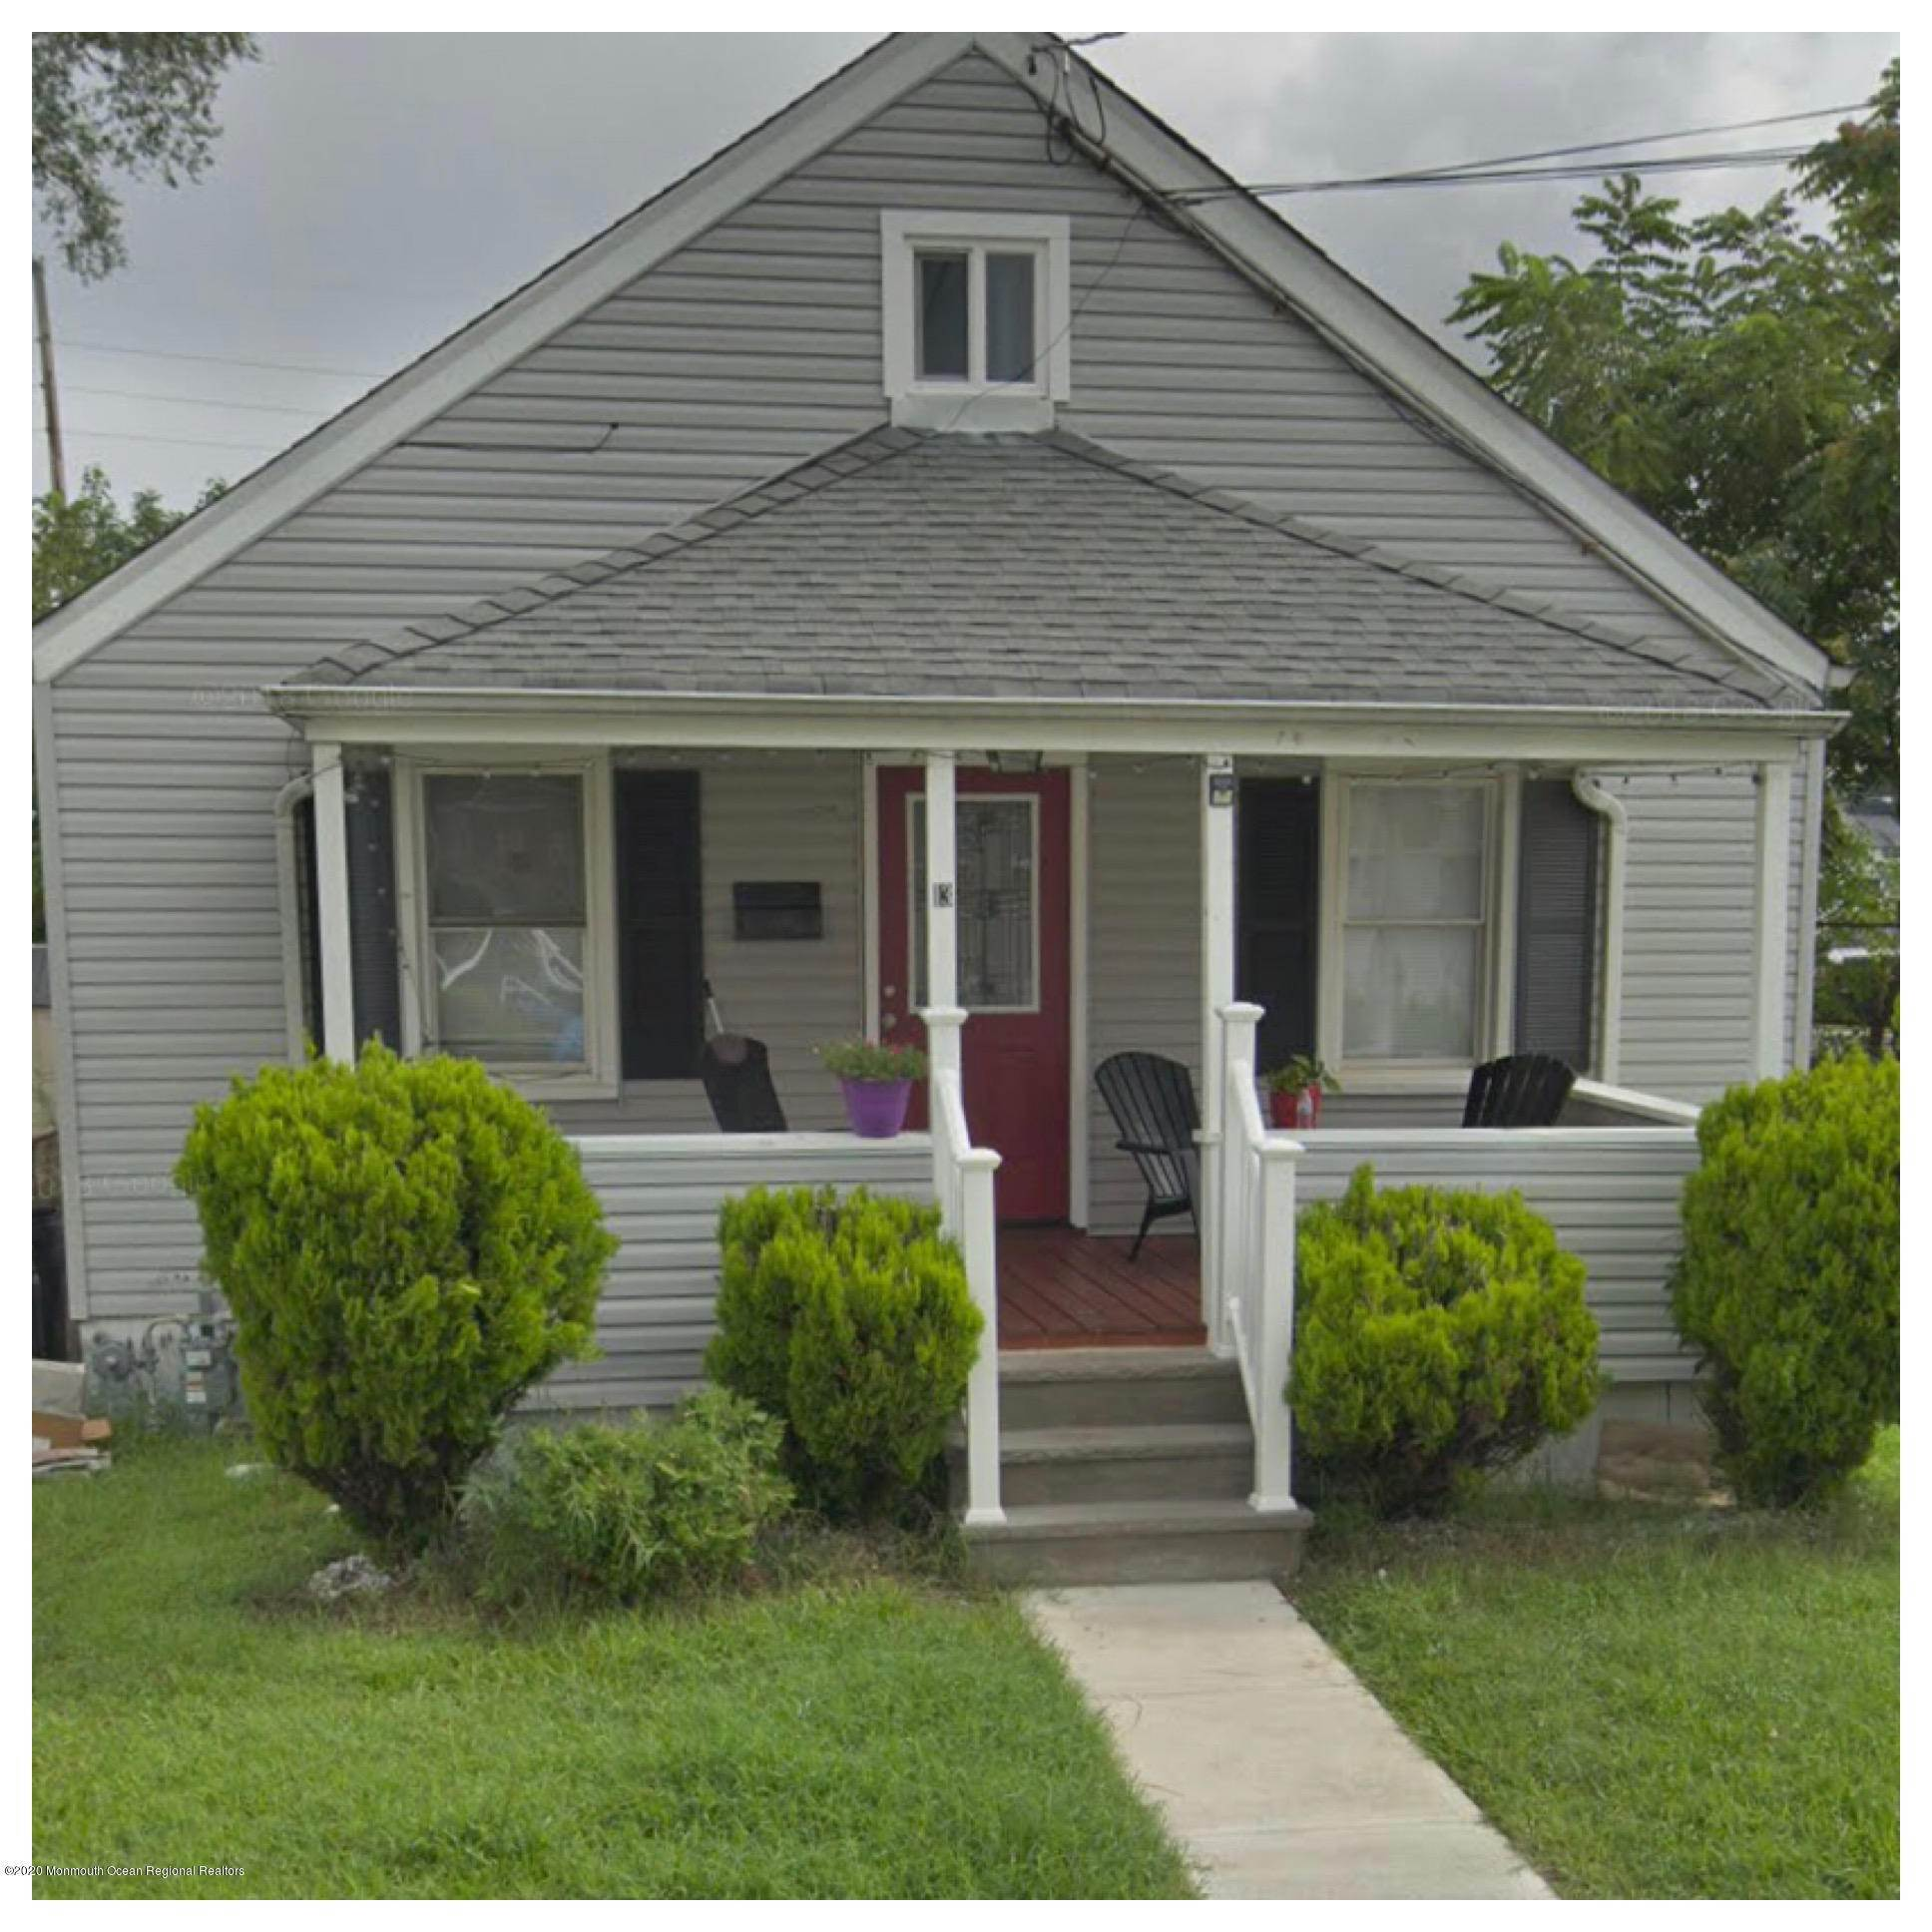 Single Family Homes for Sale at 13 May Street Keyport, New Jersey 07735 United States